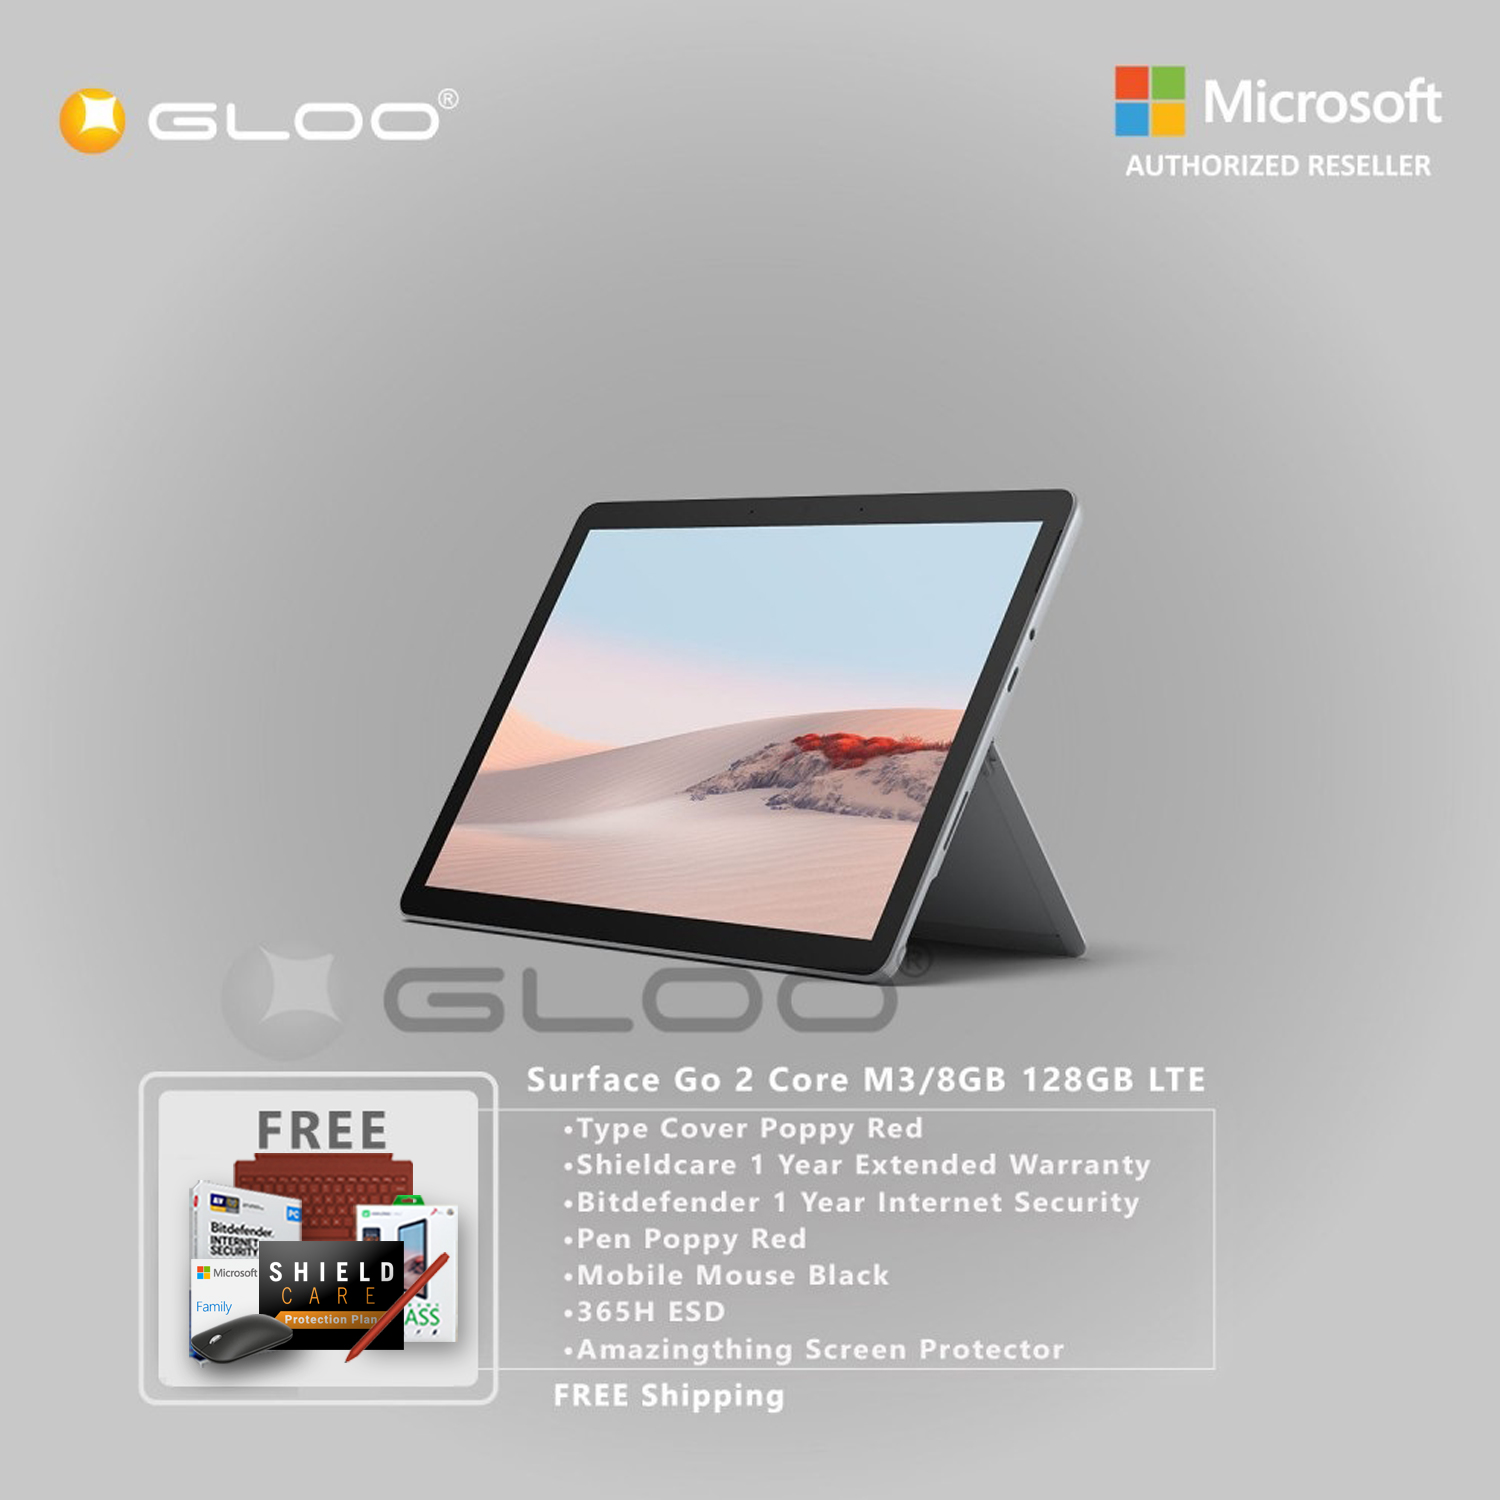 Microsoft Surface Go 2 Core M3/8GB 128GB LTE + Surface Go Type Cover Poppy Red + Shield Care 1 Year Extended Warranty+ Bitdefender 1 Year Internet Security+ Pen Poppy Red + Mobile Mouse Black + 365H ESD + Amazingthing Screen Protector [BPPMSOFZCBAMPI]